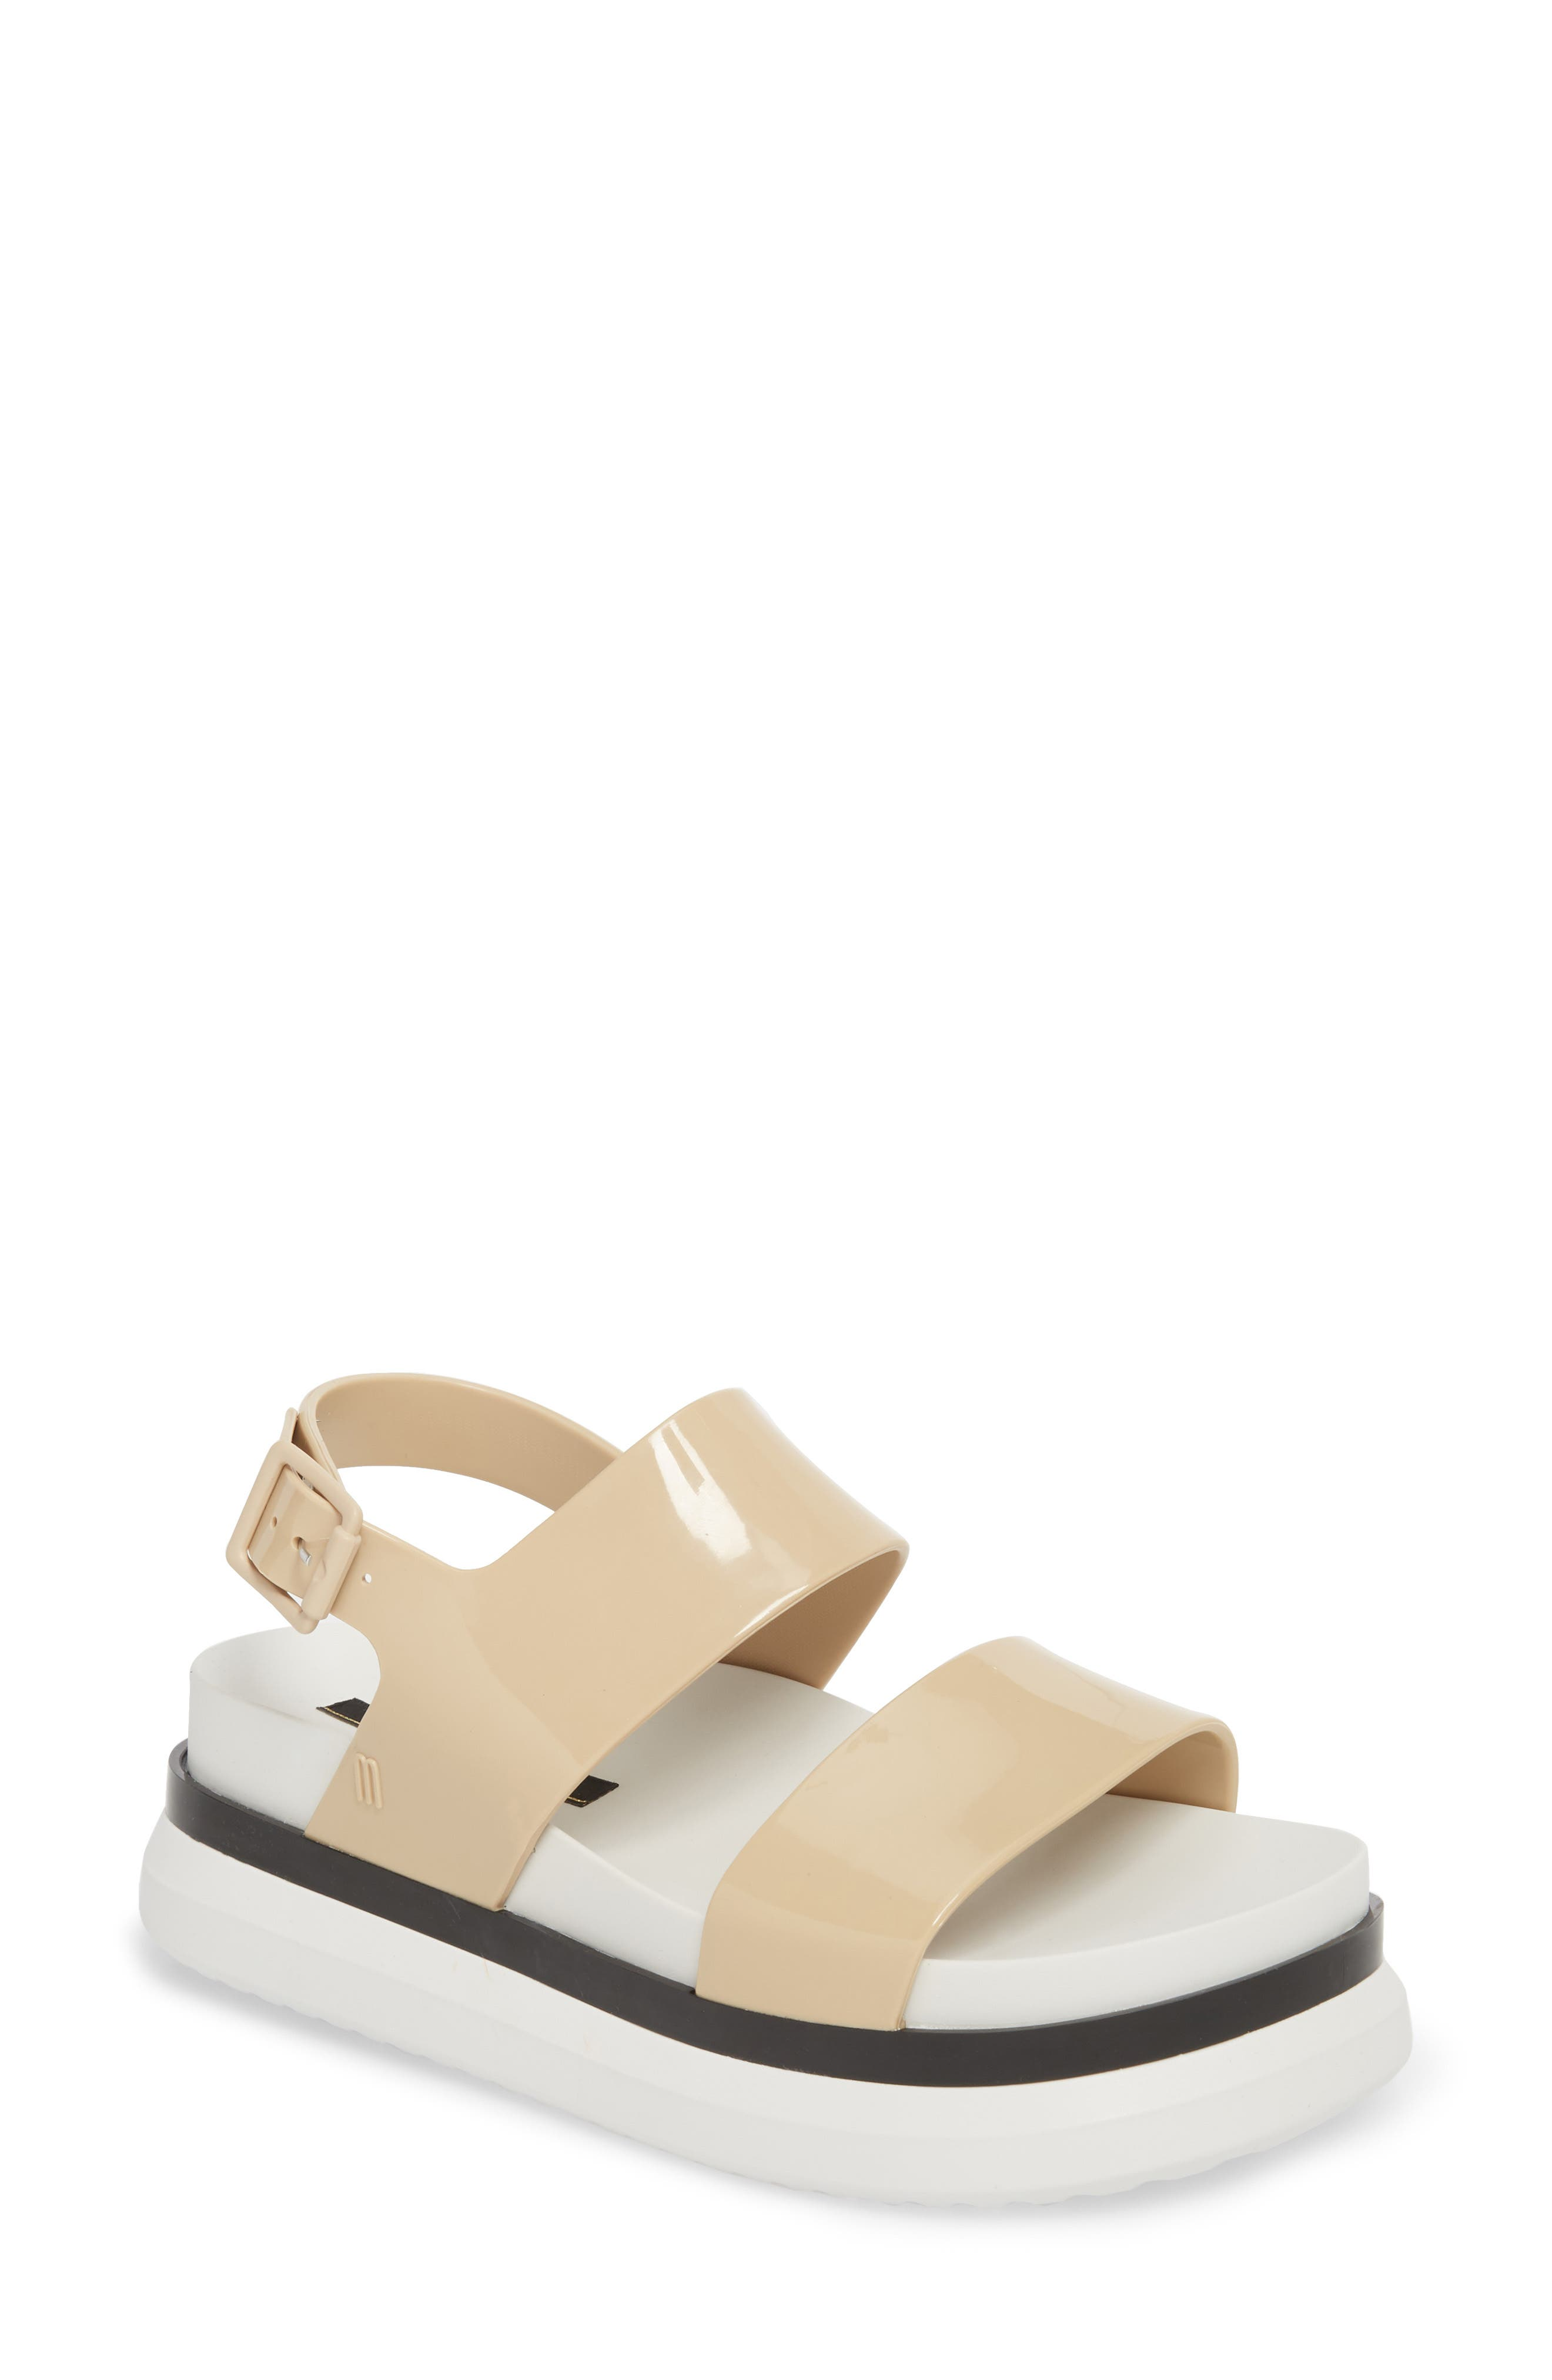 Alternate Image 1 Selected - Melissa Cosmic II Sandal (Women)